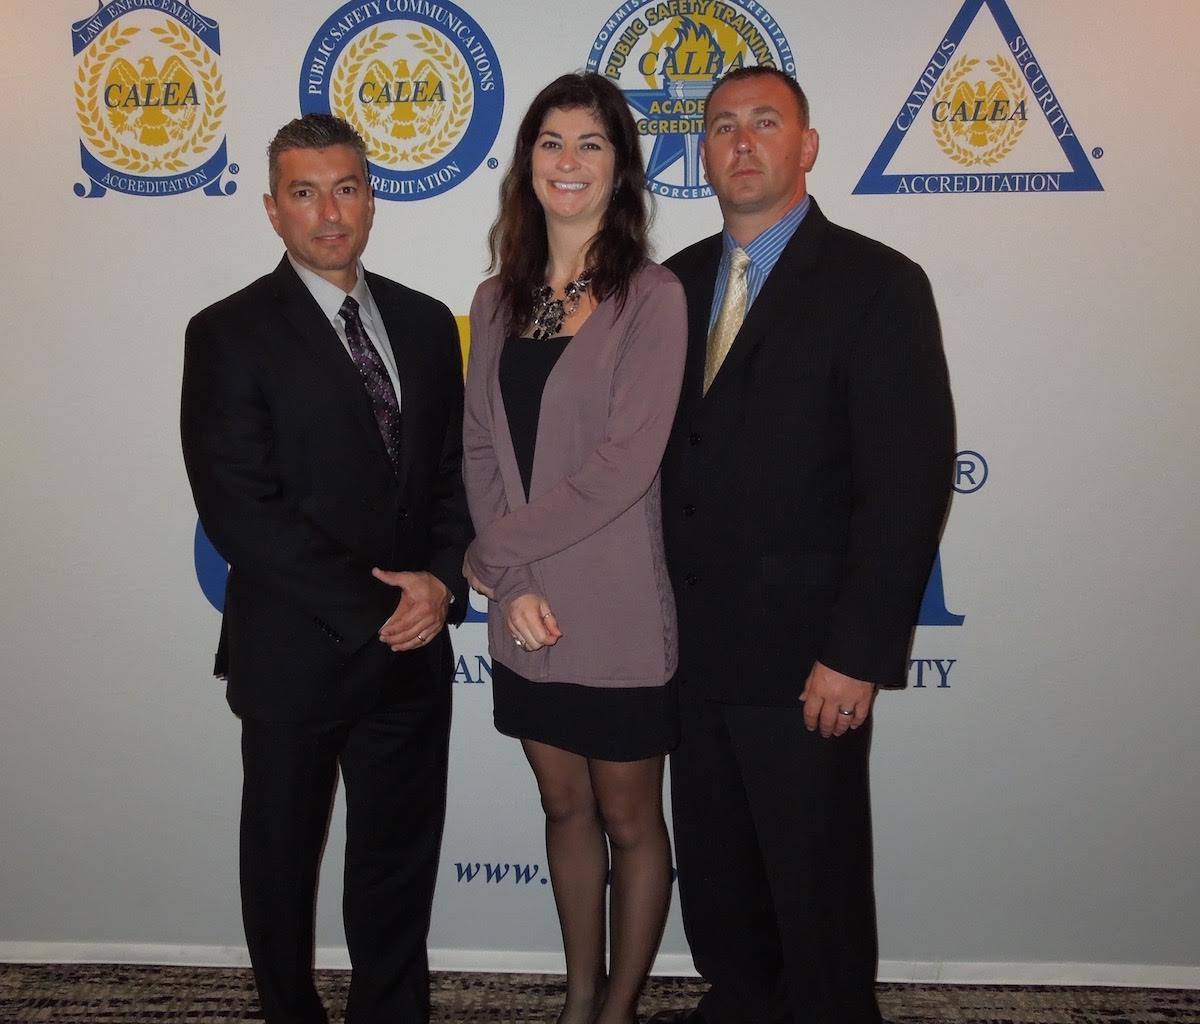 Newton, NH PD received their initial LE Accrdiation Award at the Miami CALEA Conferemce in November 2015. Shown in this photo after the banquet are Sgt. Rob DiFlumeri, Officer Leanne Wancheck (also the Accreditation Manager) and Sgt. Mike Jewett.